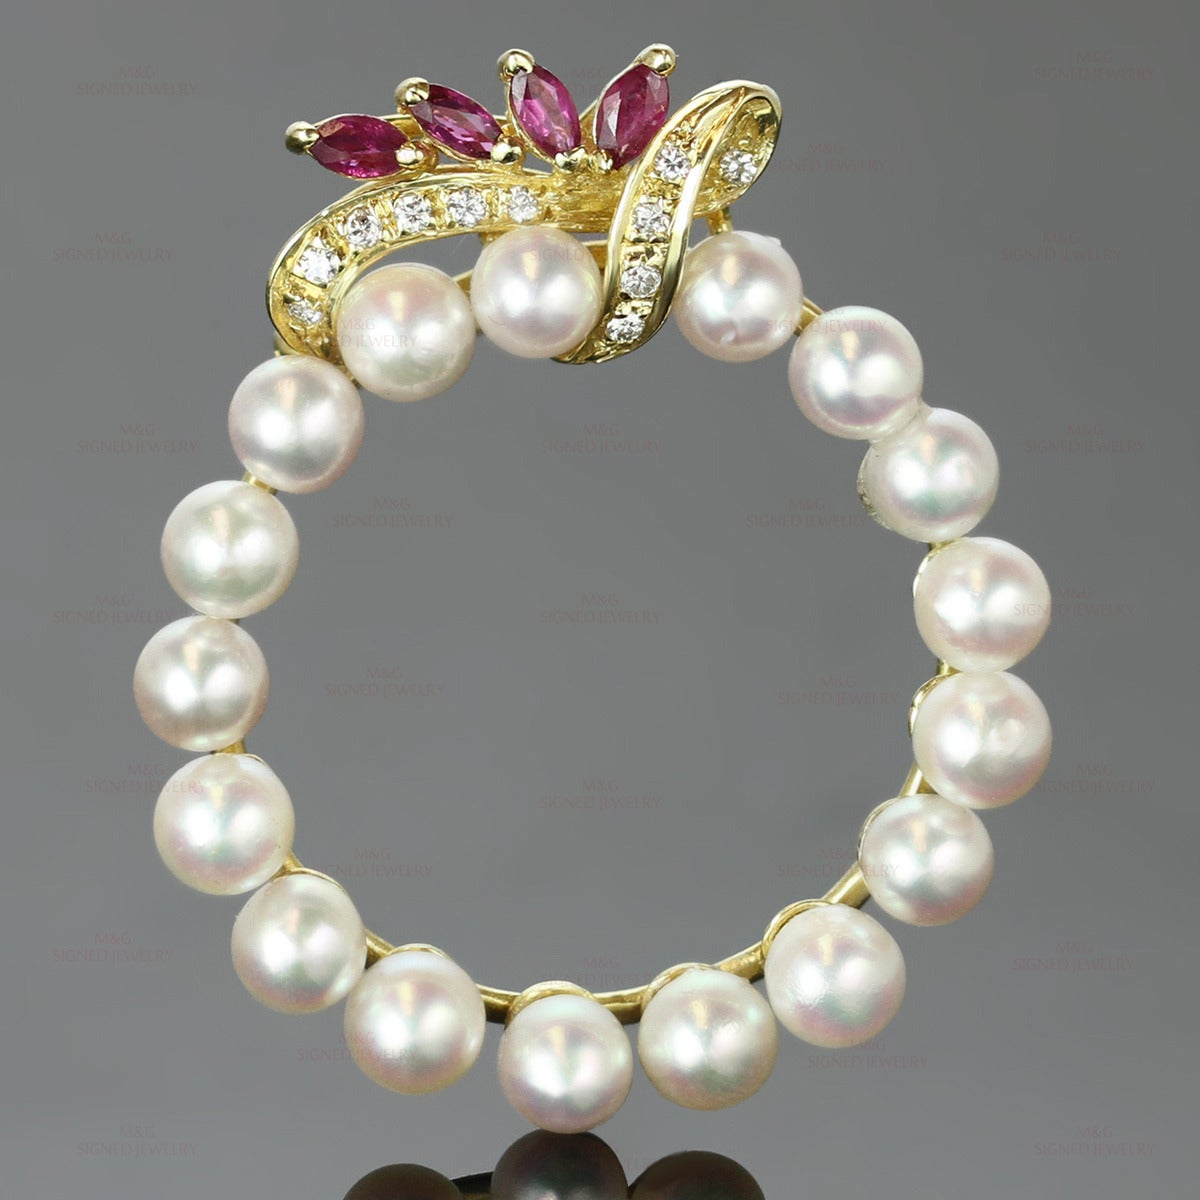 This elegant vintage brooch features a classic round design made in 14k yellow gold and cultured pearls accented with brilliant-cut round H-I VS2-SI1 diamonds of an estimated 0.10 carats and 4 marquise-cut faceted red rubies of an estimated 0.24